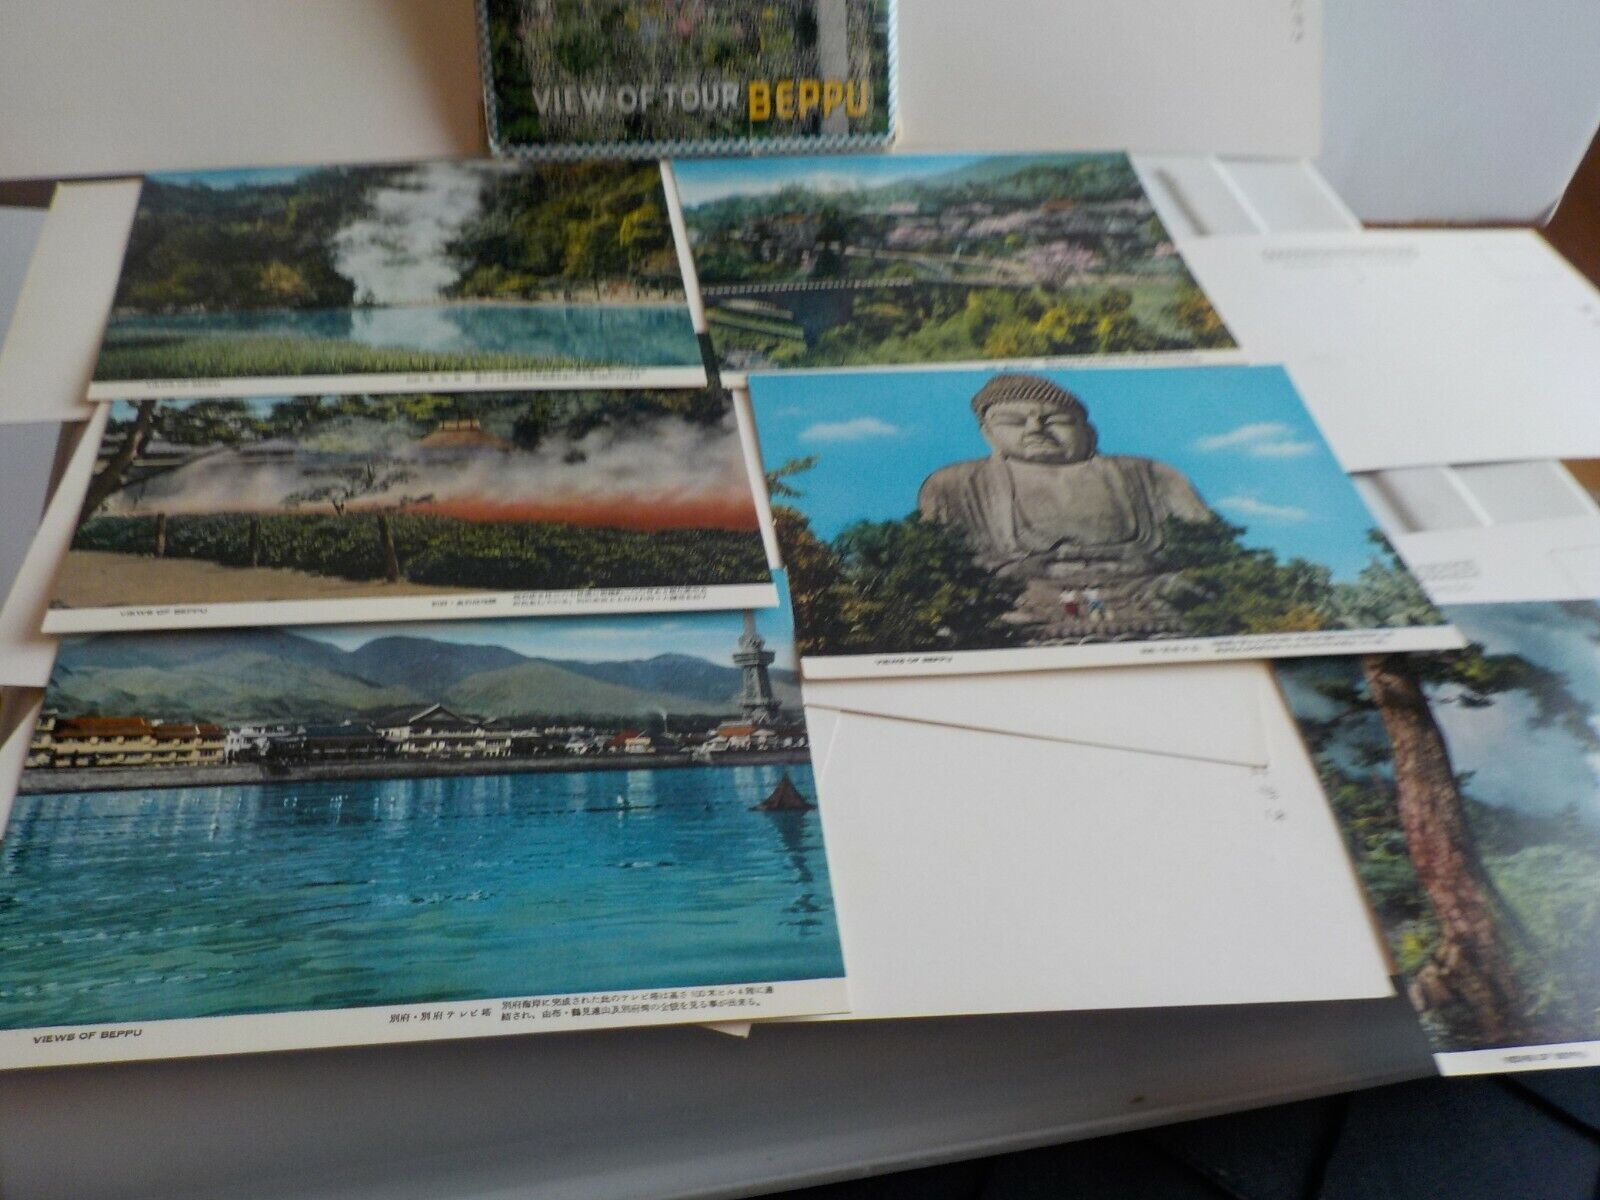 POST CARDS IN SLEEVE VIEW OF TOUR BEPPU A CITY IN JAPAN 15 CARDS WRITING IN JAP - $18.04